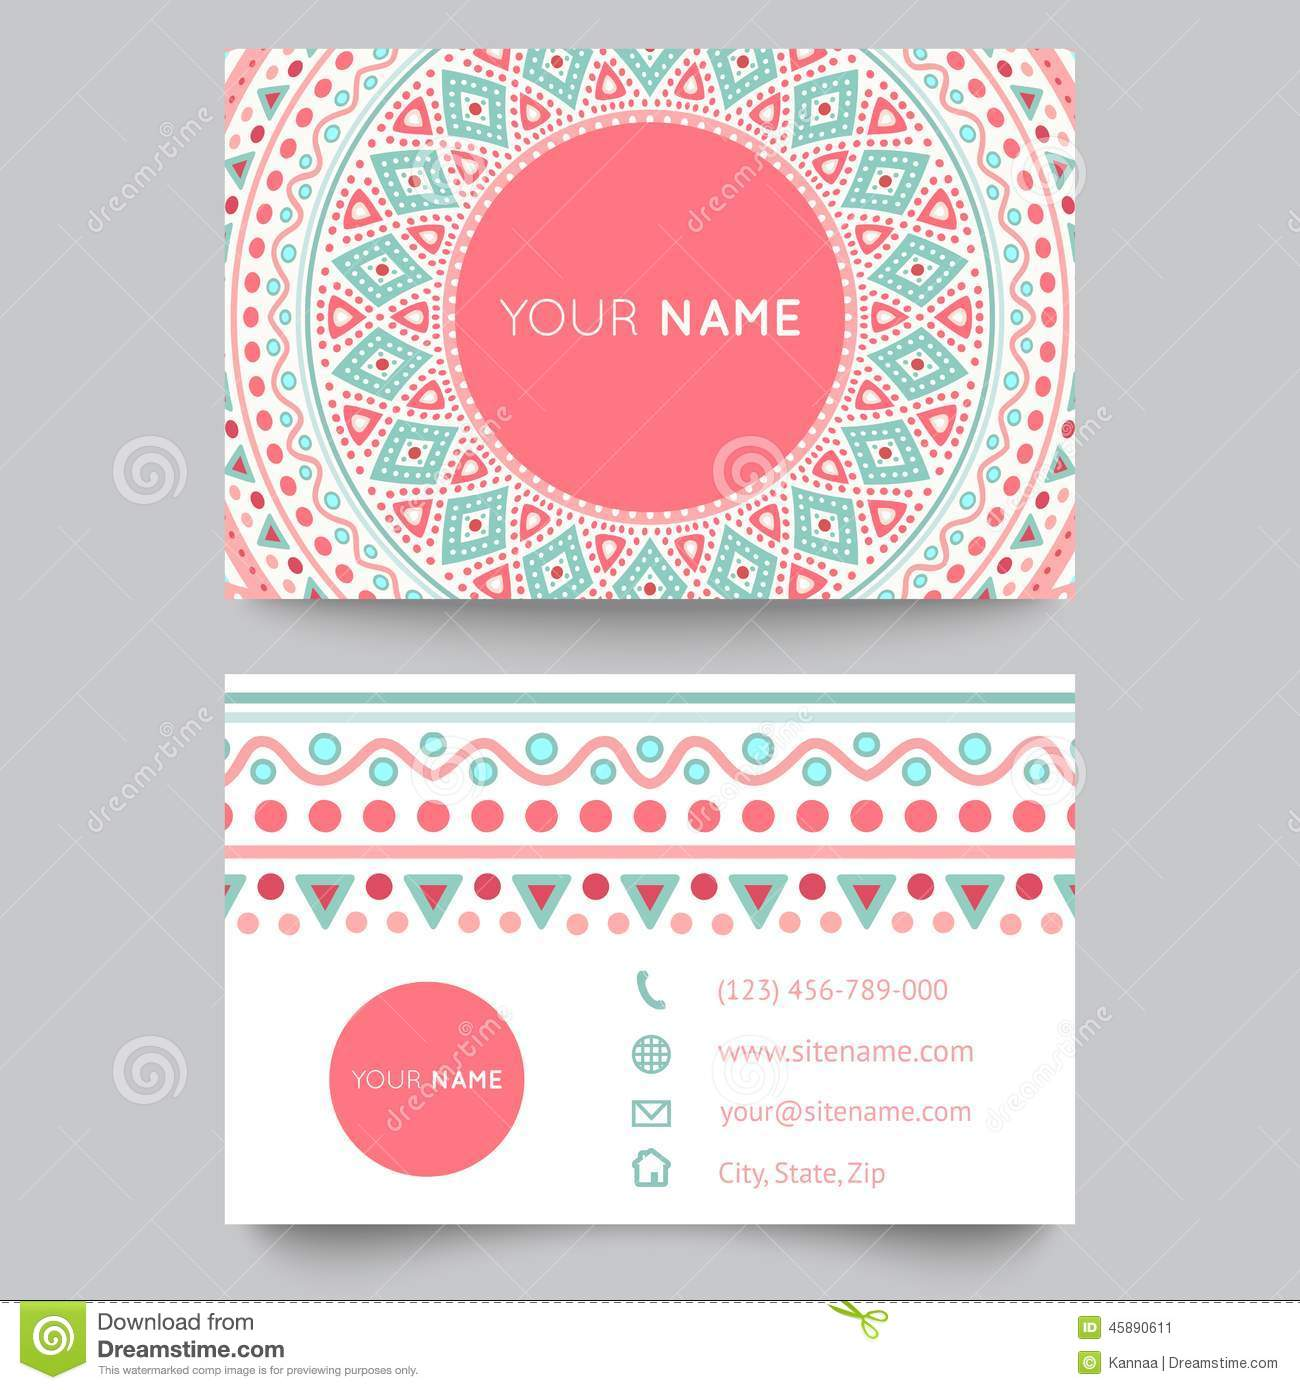 Business card template blue white and pink stock vector download business card template blue white and pink stock vector illustration of background reheart Gallery